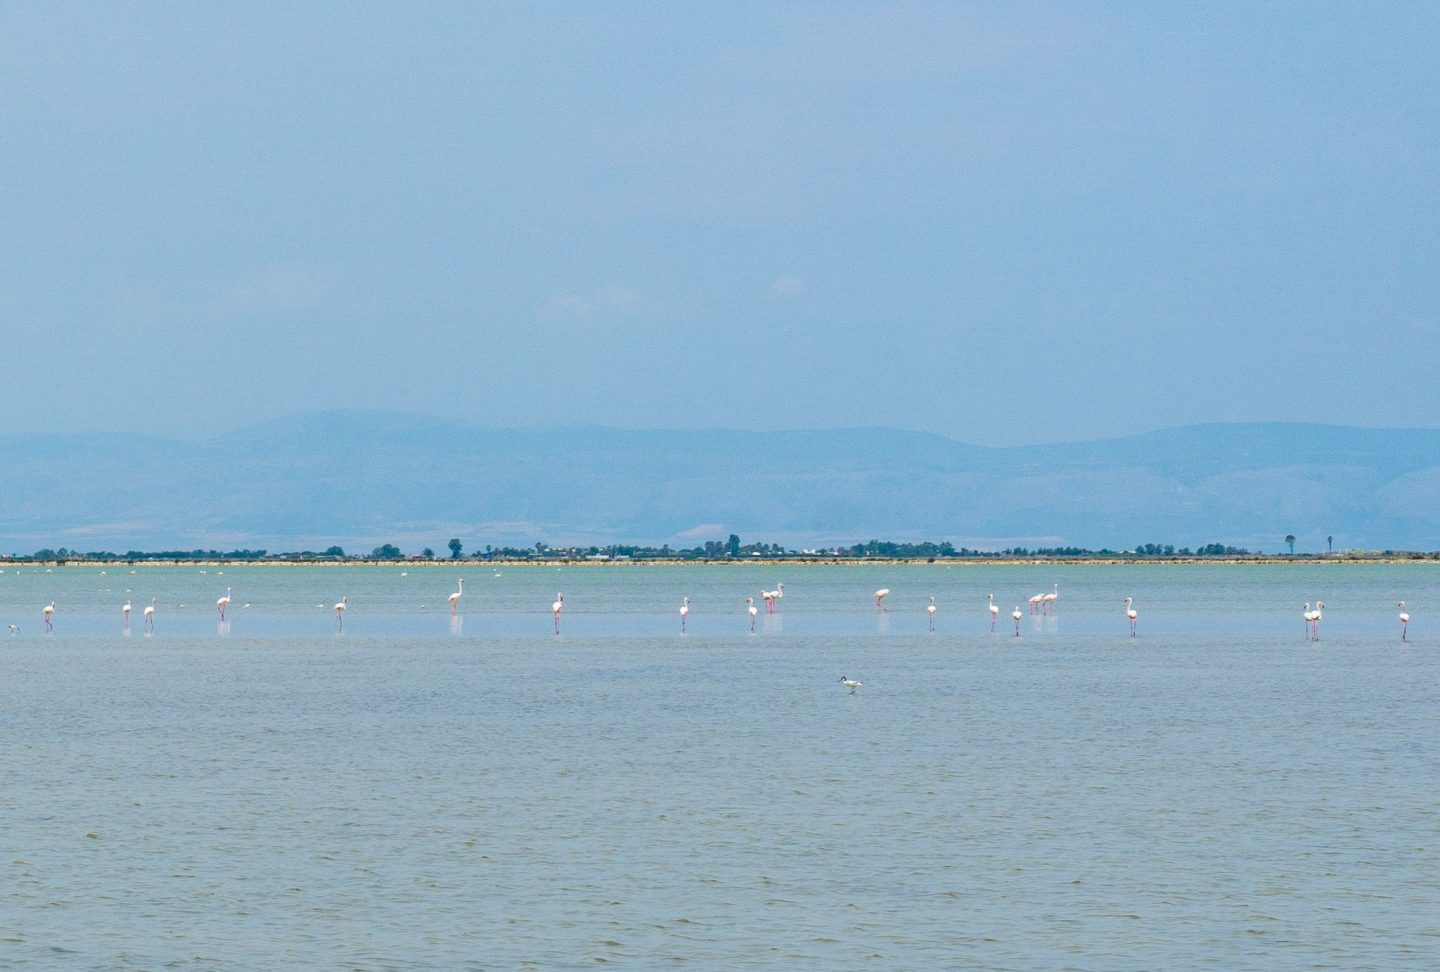 Margherita de Savoia Puglia Nadia El Ferdaoussi Travel Blogger and Writer Italy Salt pans lakes pink flamingoes